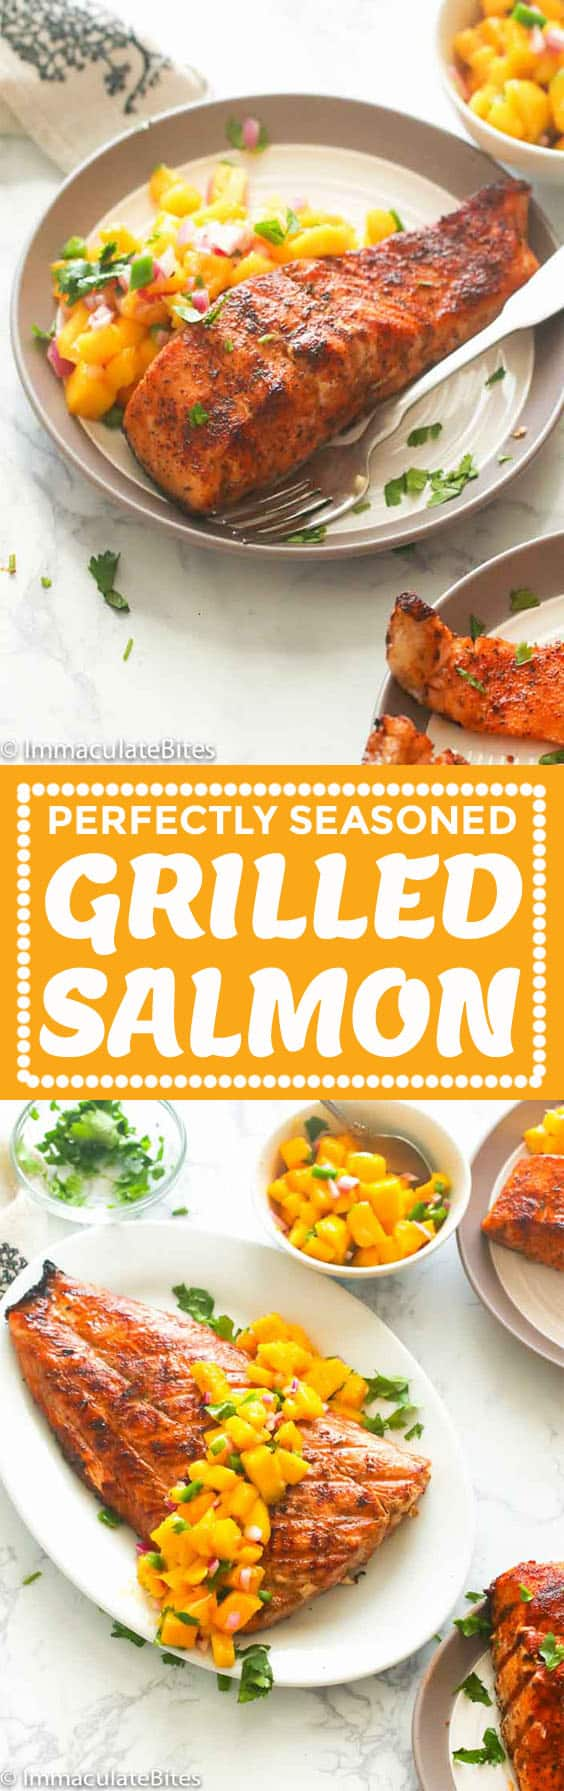 Grilled Salmon Recipe.